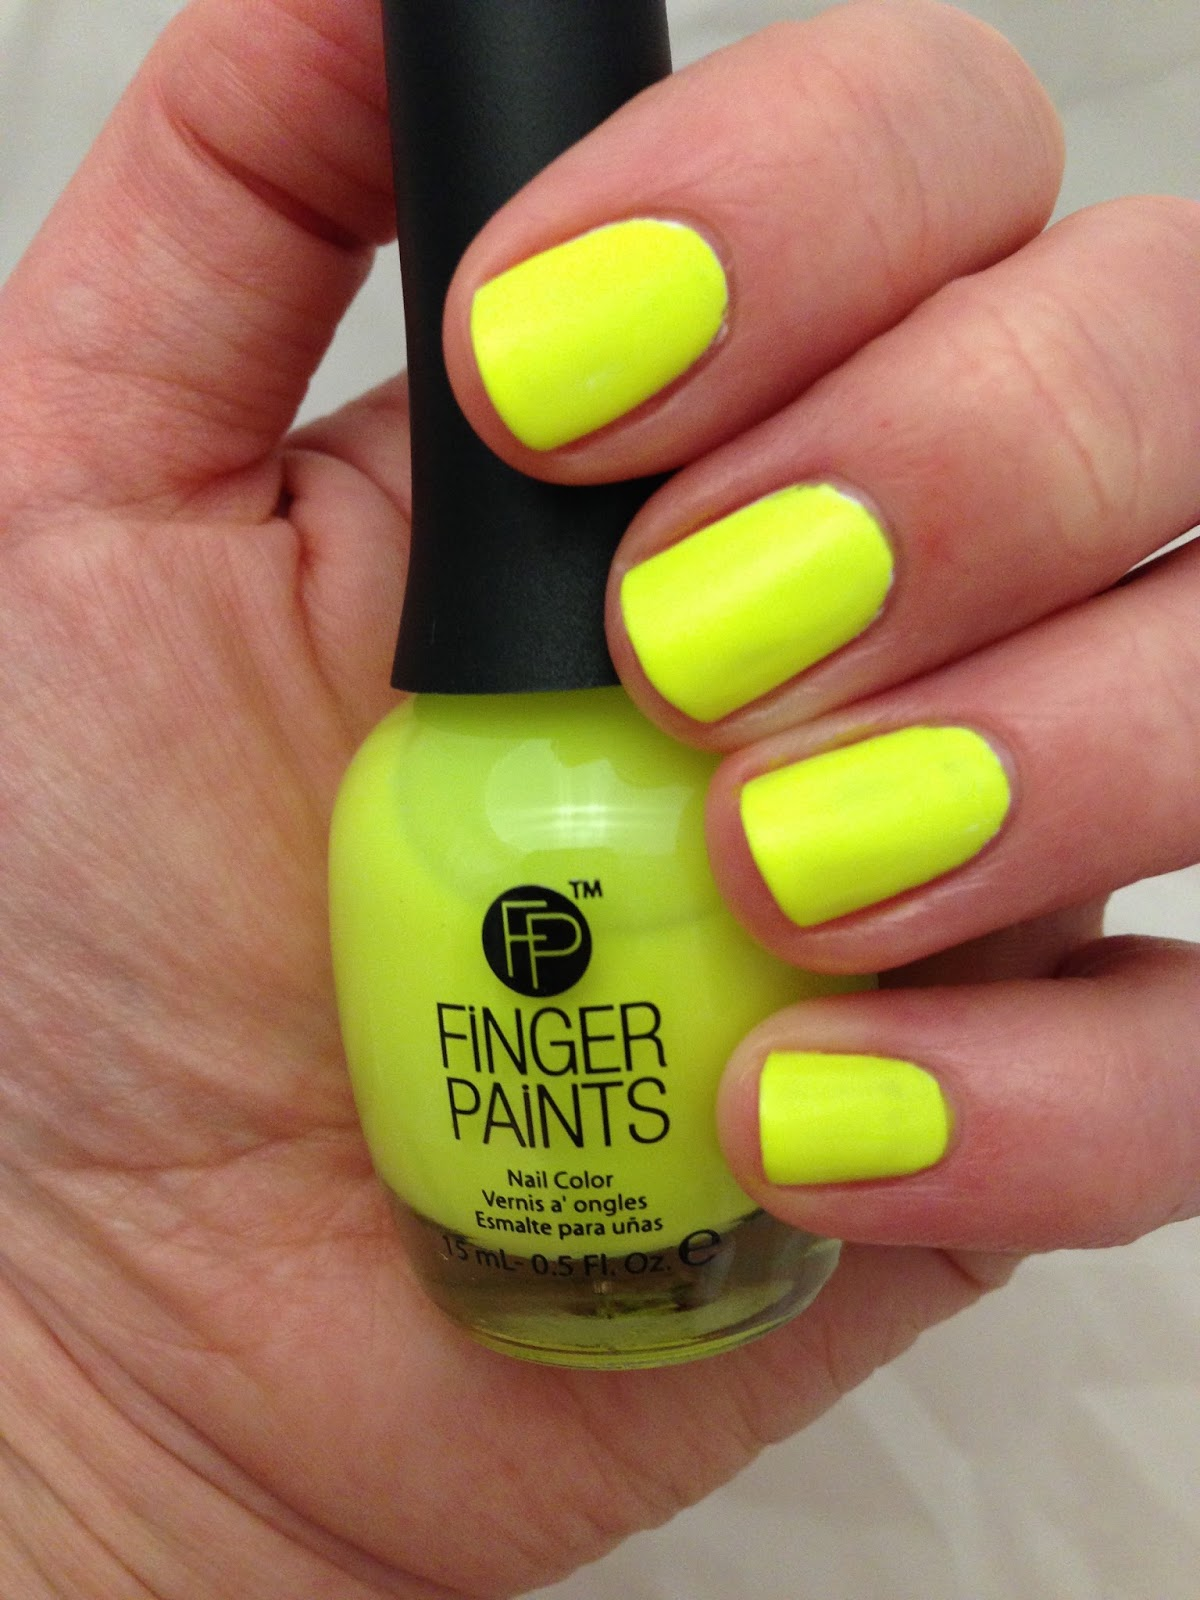 The Manicured Monkey: Finger Paints: New Shades Including Neons!